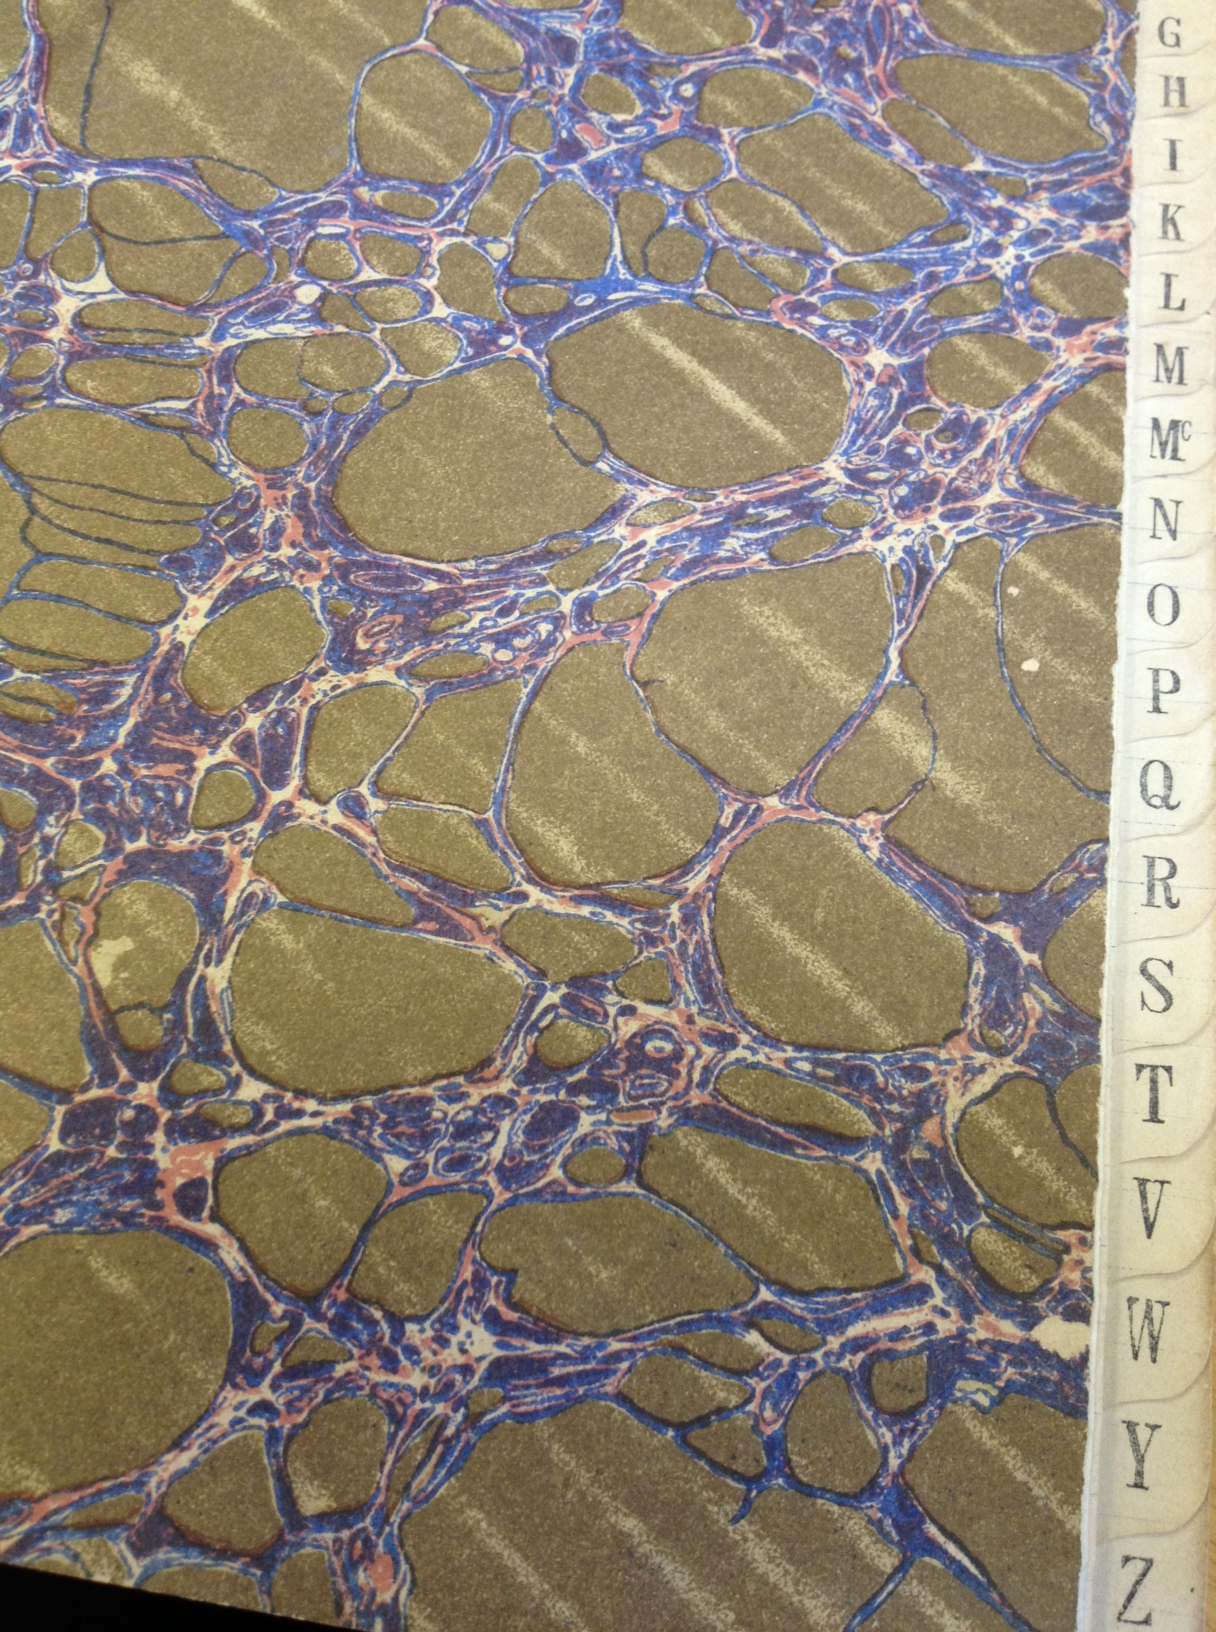 This is the lovely end paper of the first PM book of the Department of Pathology, University of Cape Town. A passing resemblance to lung alveoli at low power?